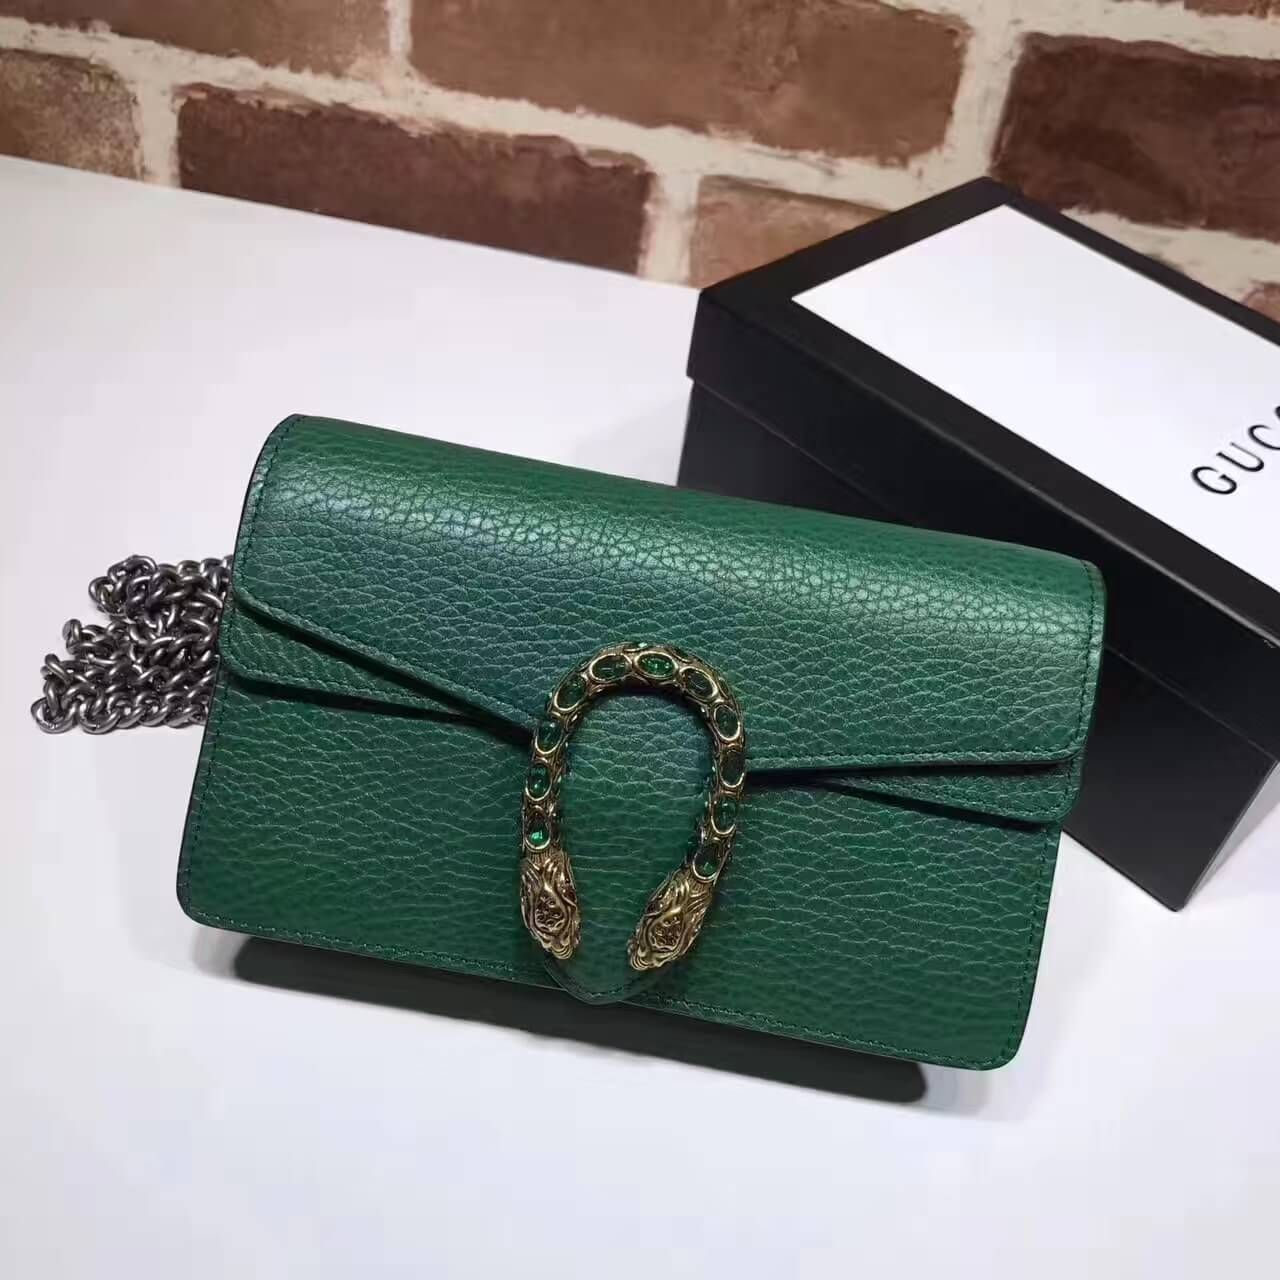 e6b2c7e65be Gucci Dionysus Leather Super Mini Bag 476432 Green 2017